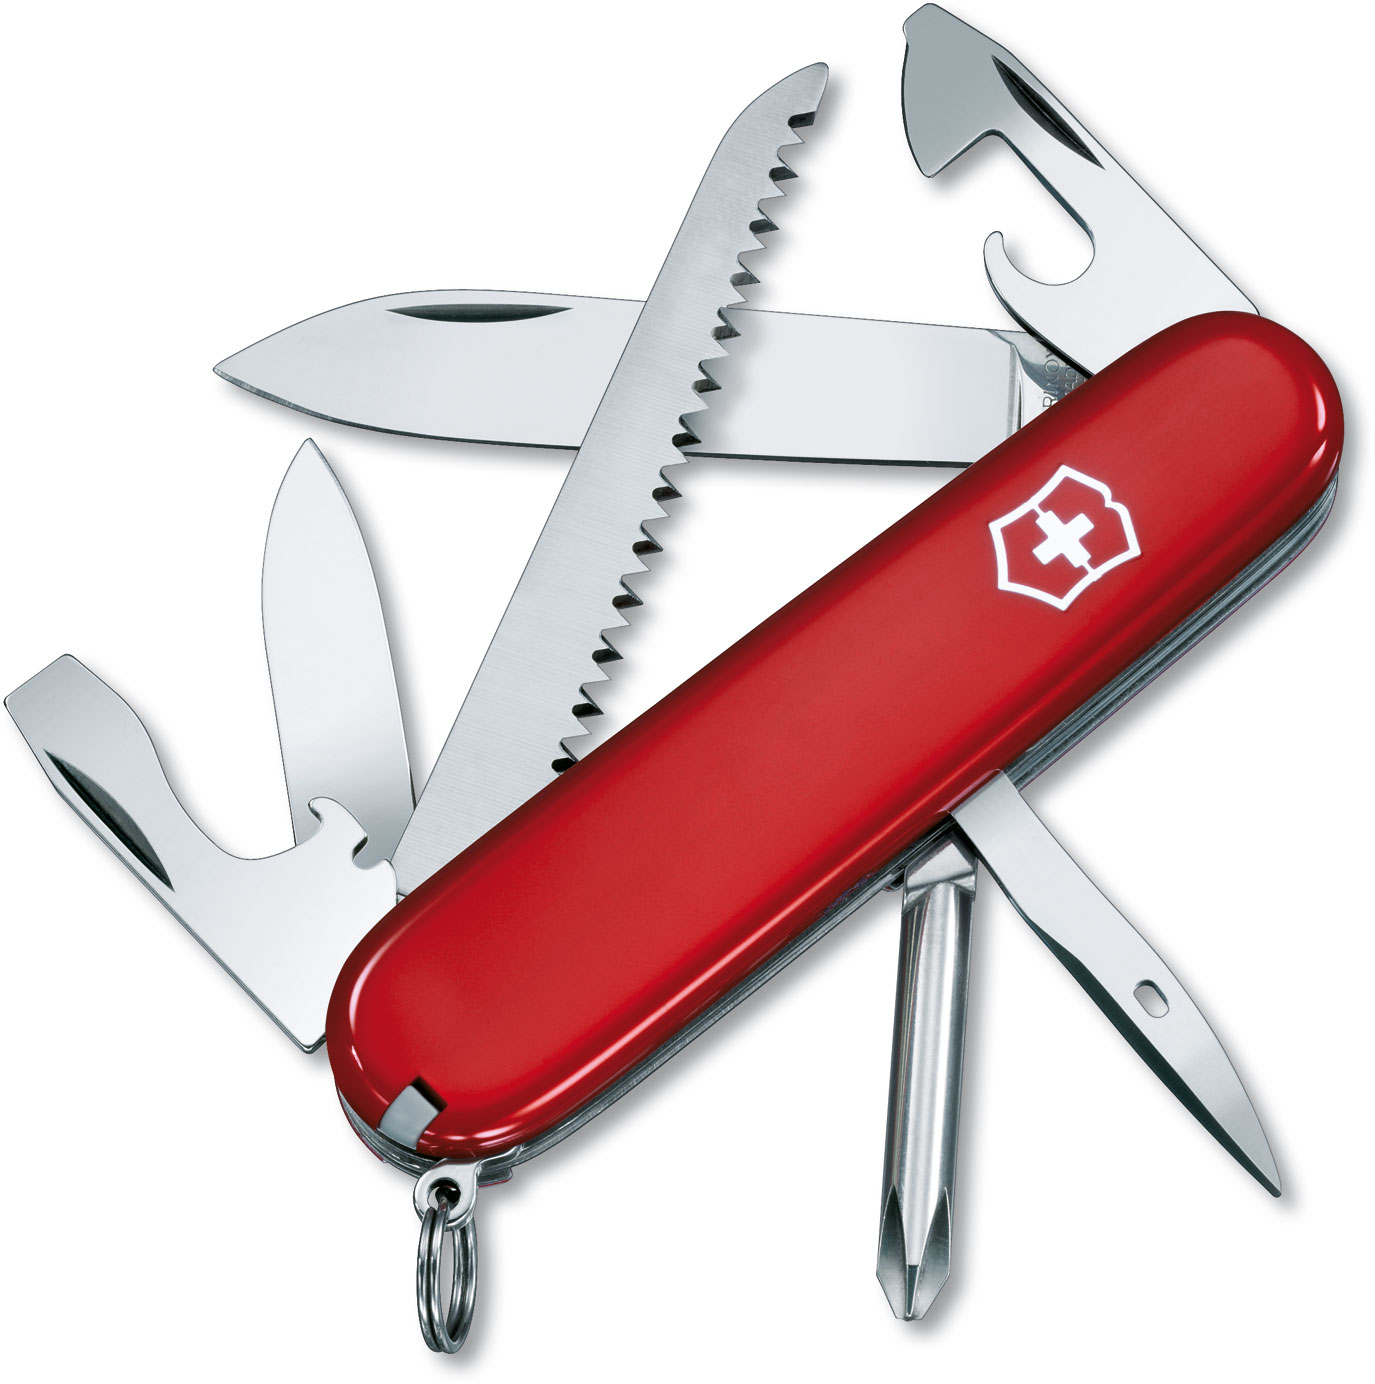 Victorinox Swiss Army Hiker Multi-Tool, Red, 3.58 inch Closed